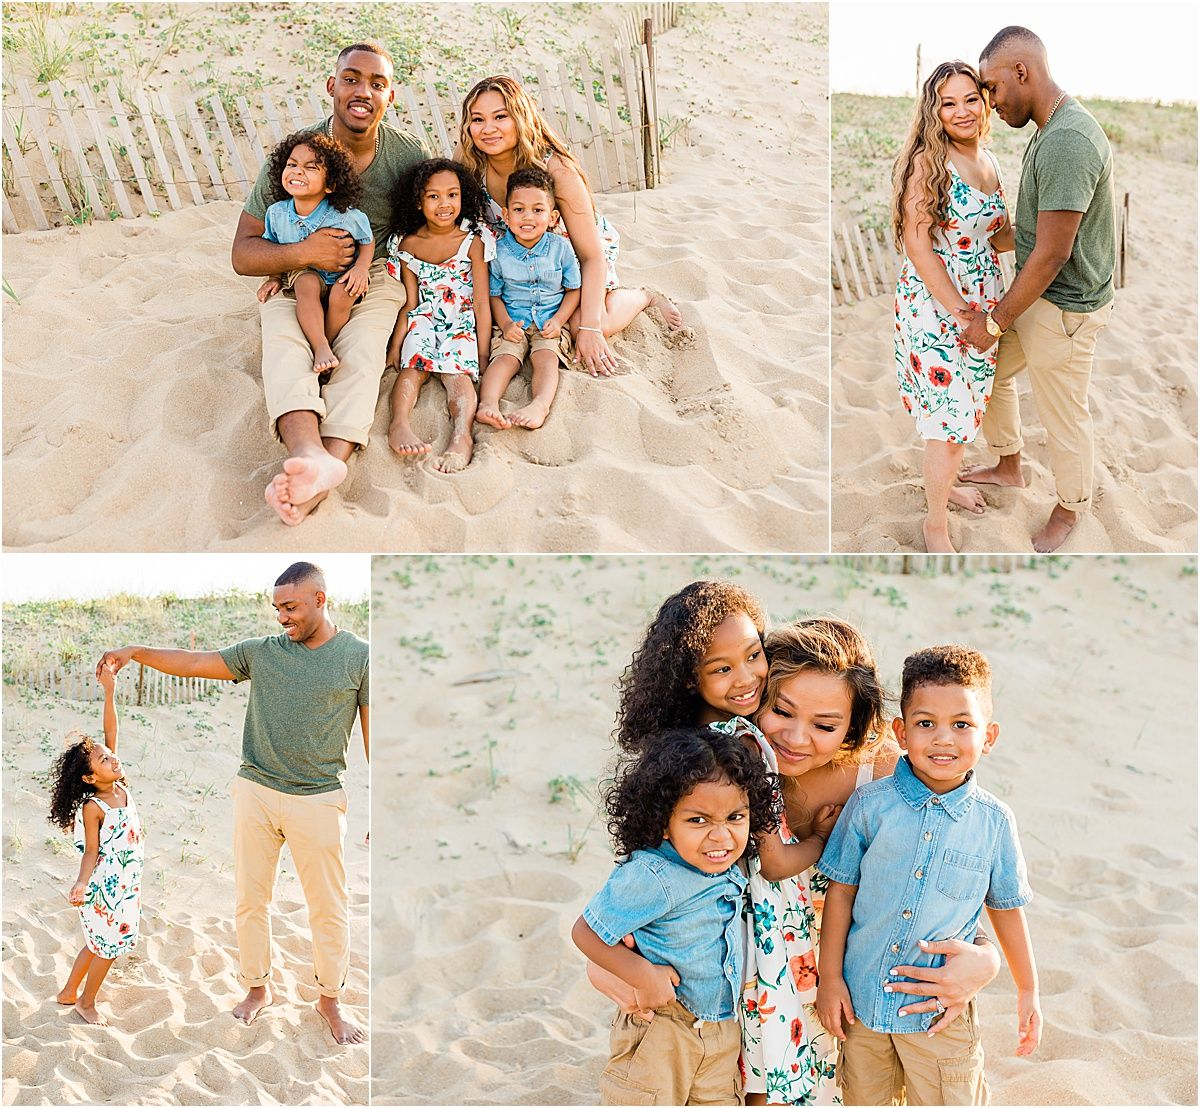 virginia family photographer, Virginia Beach photographer, Virginia Beach Family Photographer